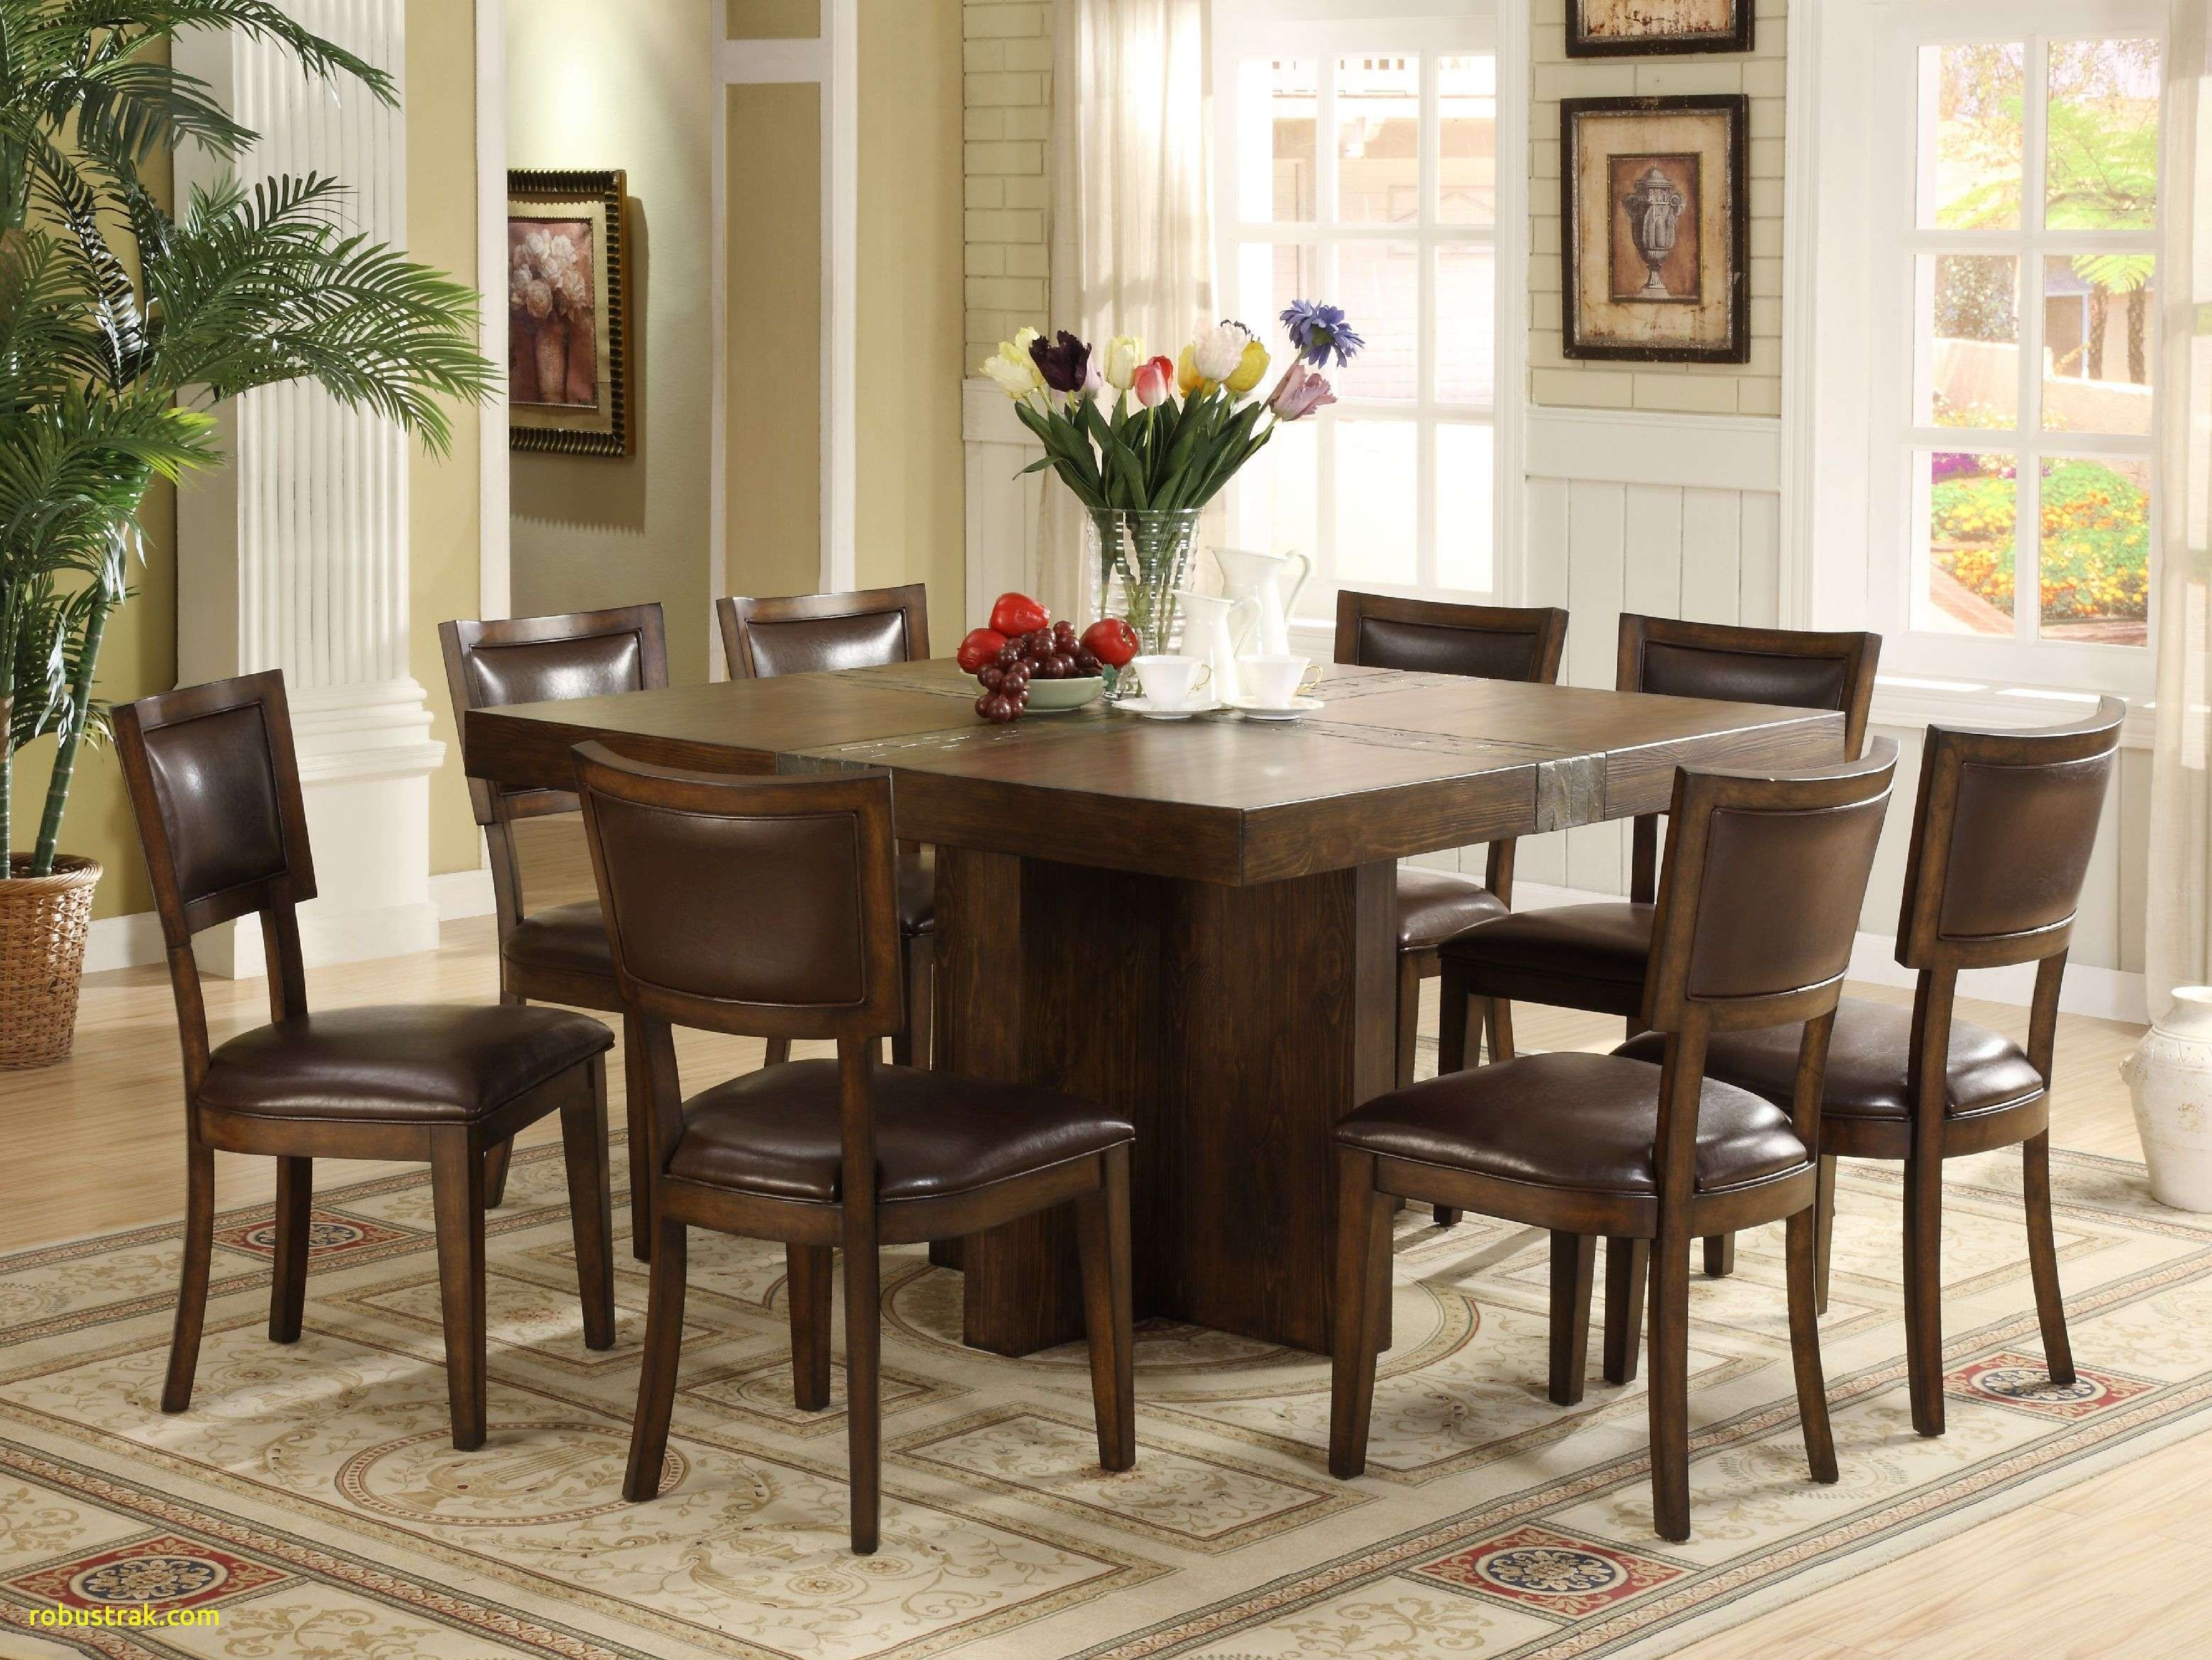 Dining Room Table Seats 9 Beautiful New 9 Seat Square Dining Table ...